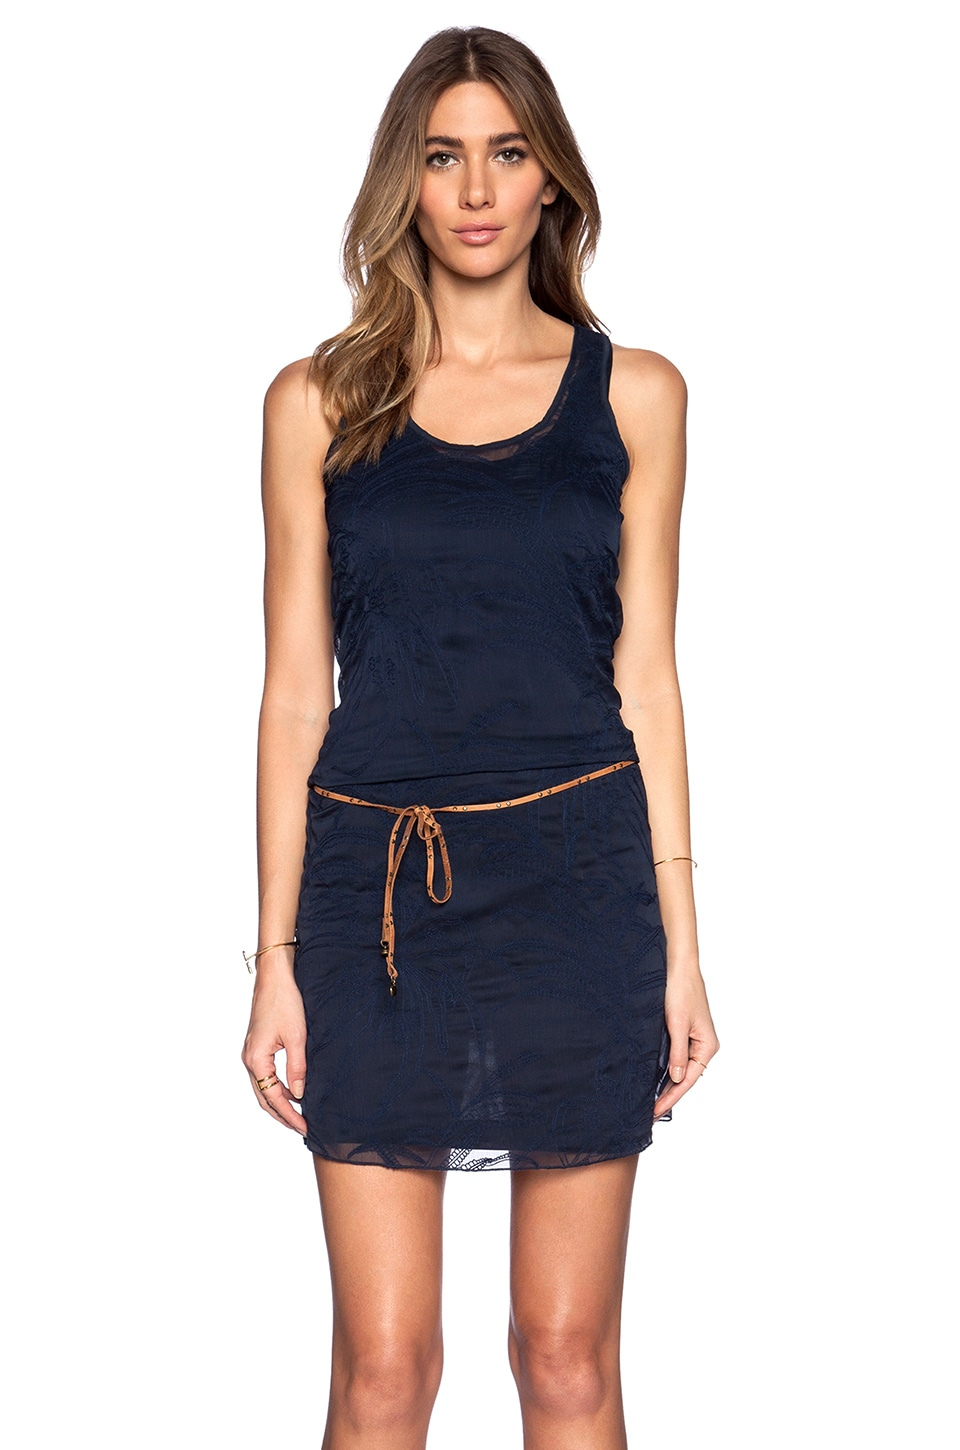 Maison Scotch Embroidered Dress in Navy